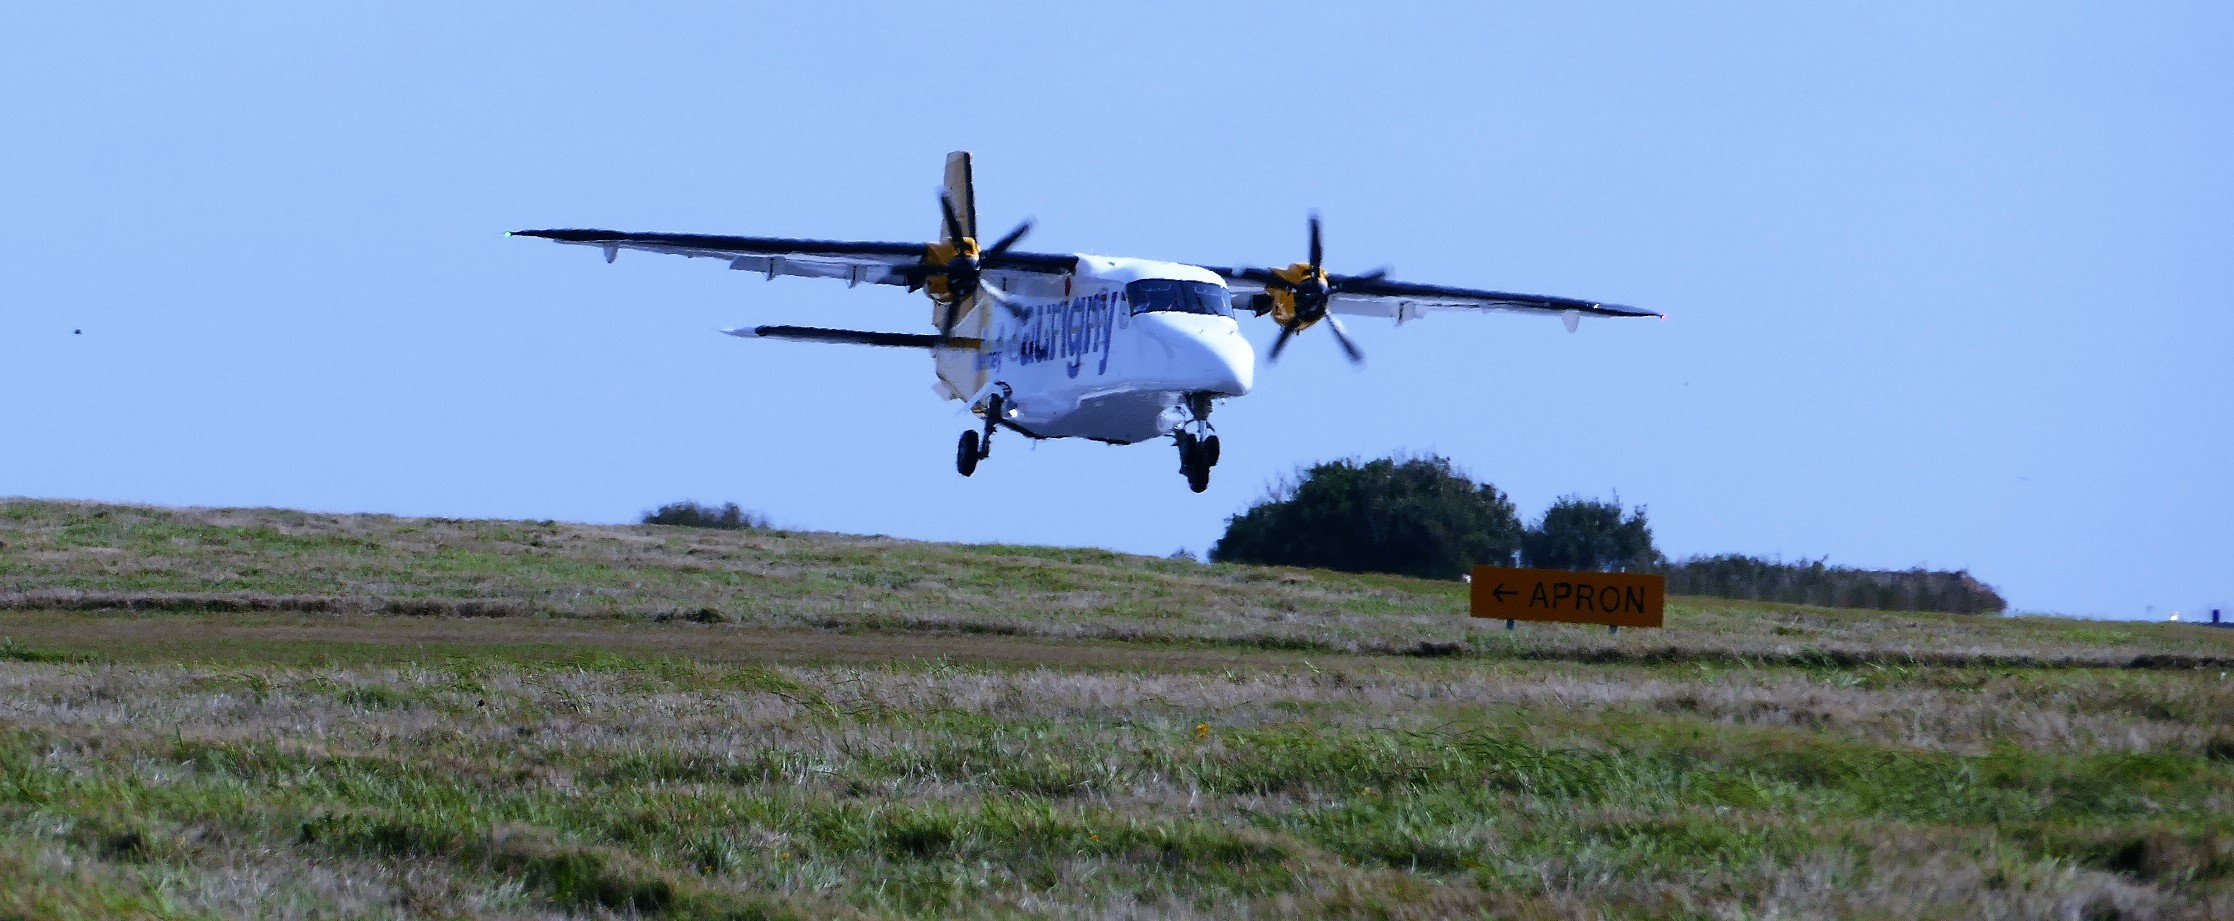 Stsb To Ask States For 12m To Upgrade Alderney S Airport